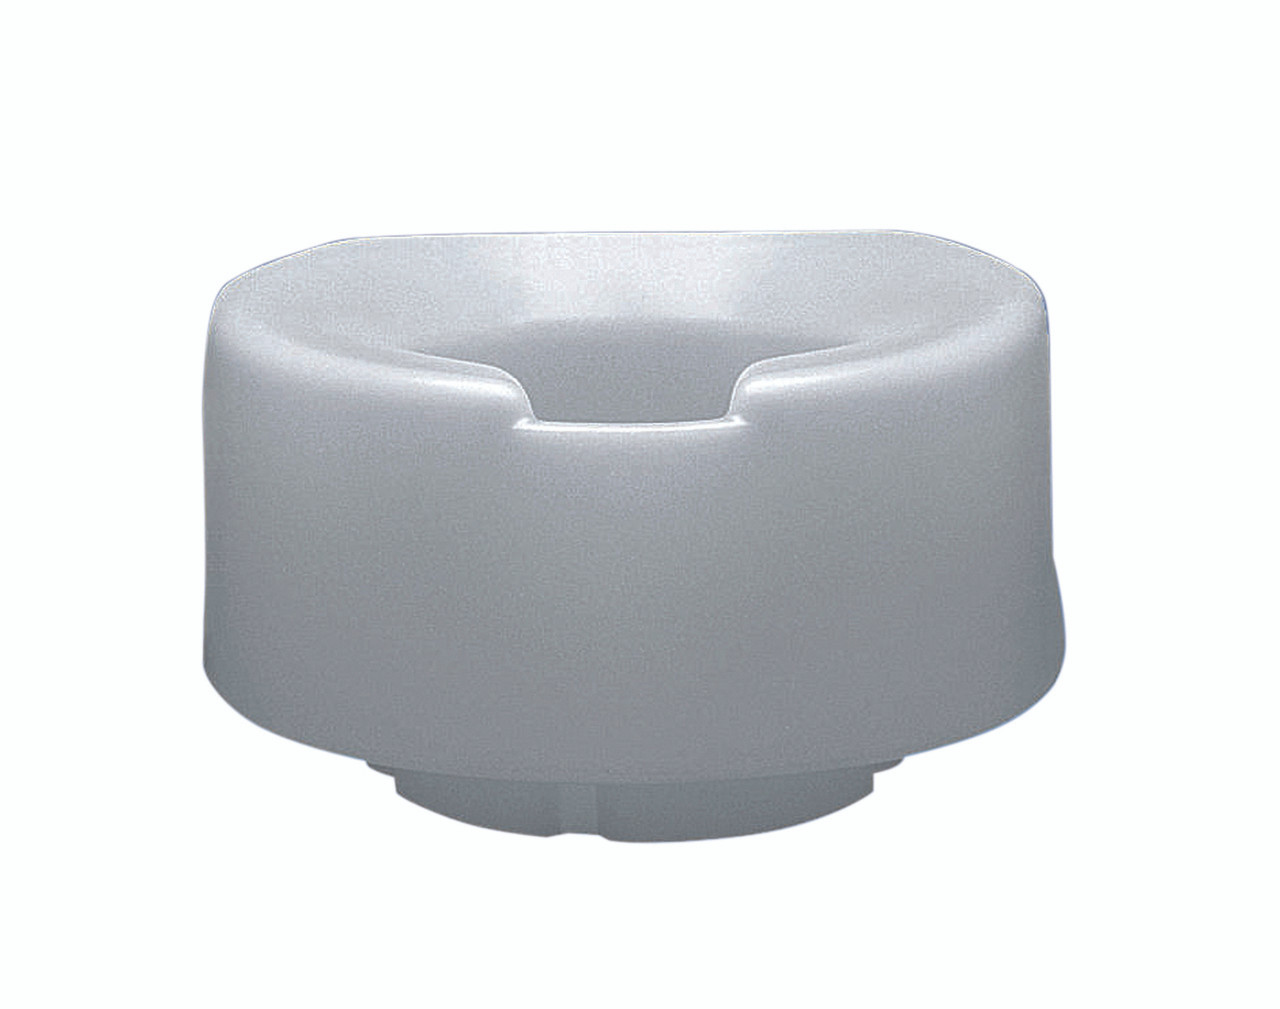 Tremendous Contoured Elevated Toilet Seat Standard With Slip In Bracket 6 Inch Ncnpc Chair Design For Home Ncnpcorg